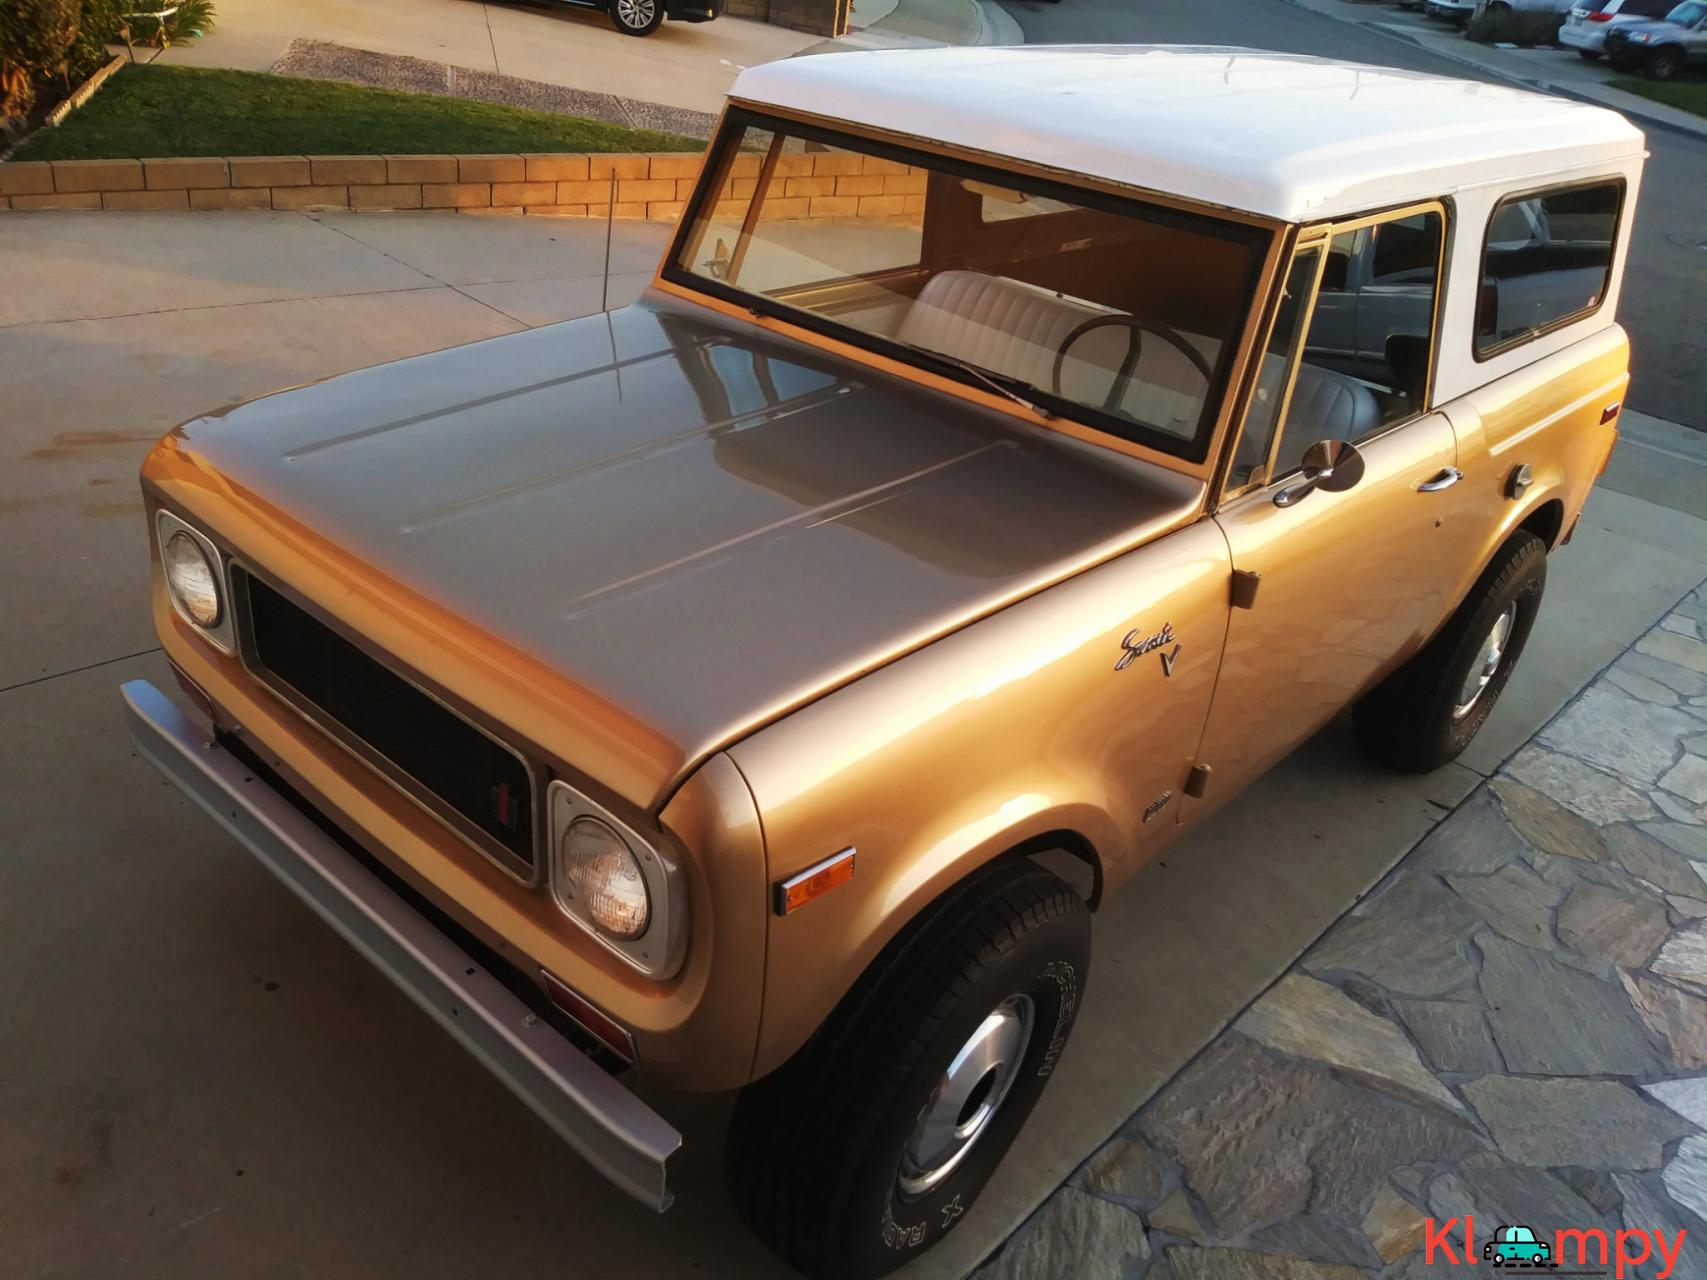 1971 International Harvester Scout 800B Apache Gold Poly 4x4 - 10/14